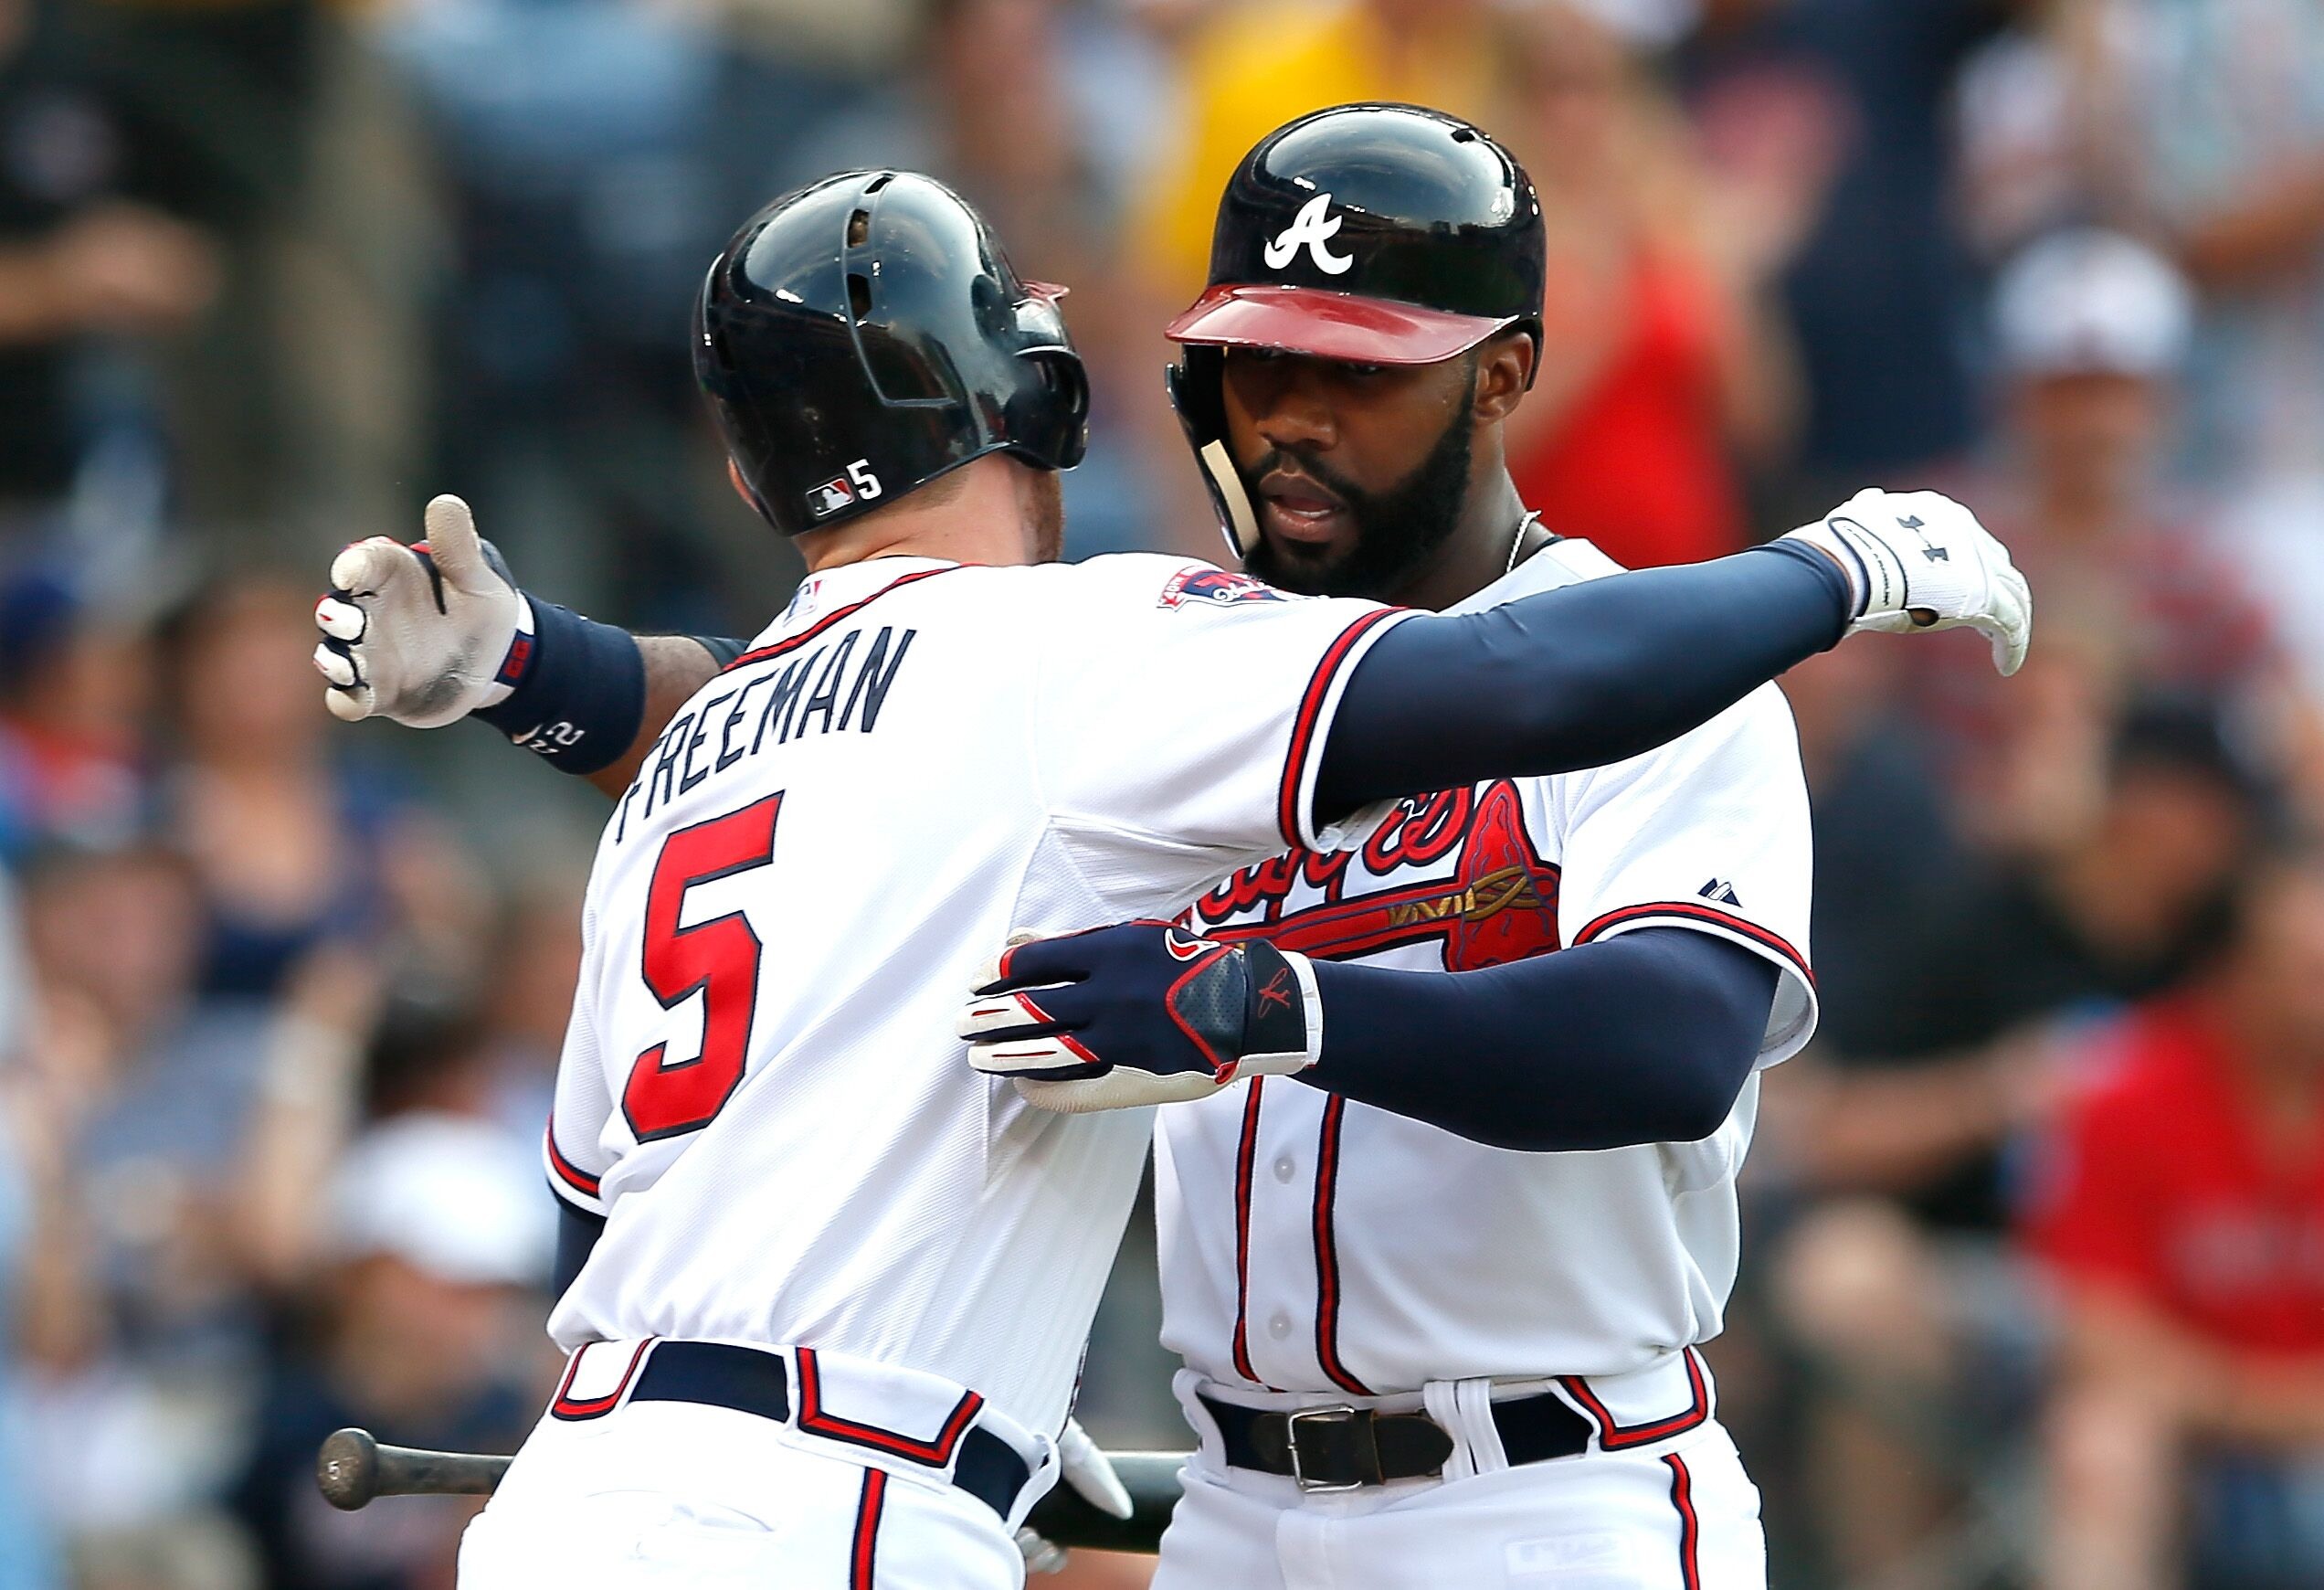 Atlanta Braves: Top 10 Rookie Seasons of Past 30 Years